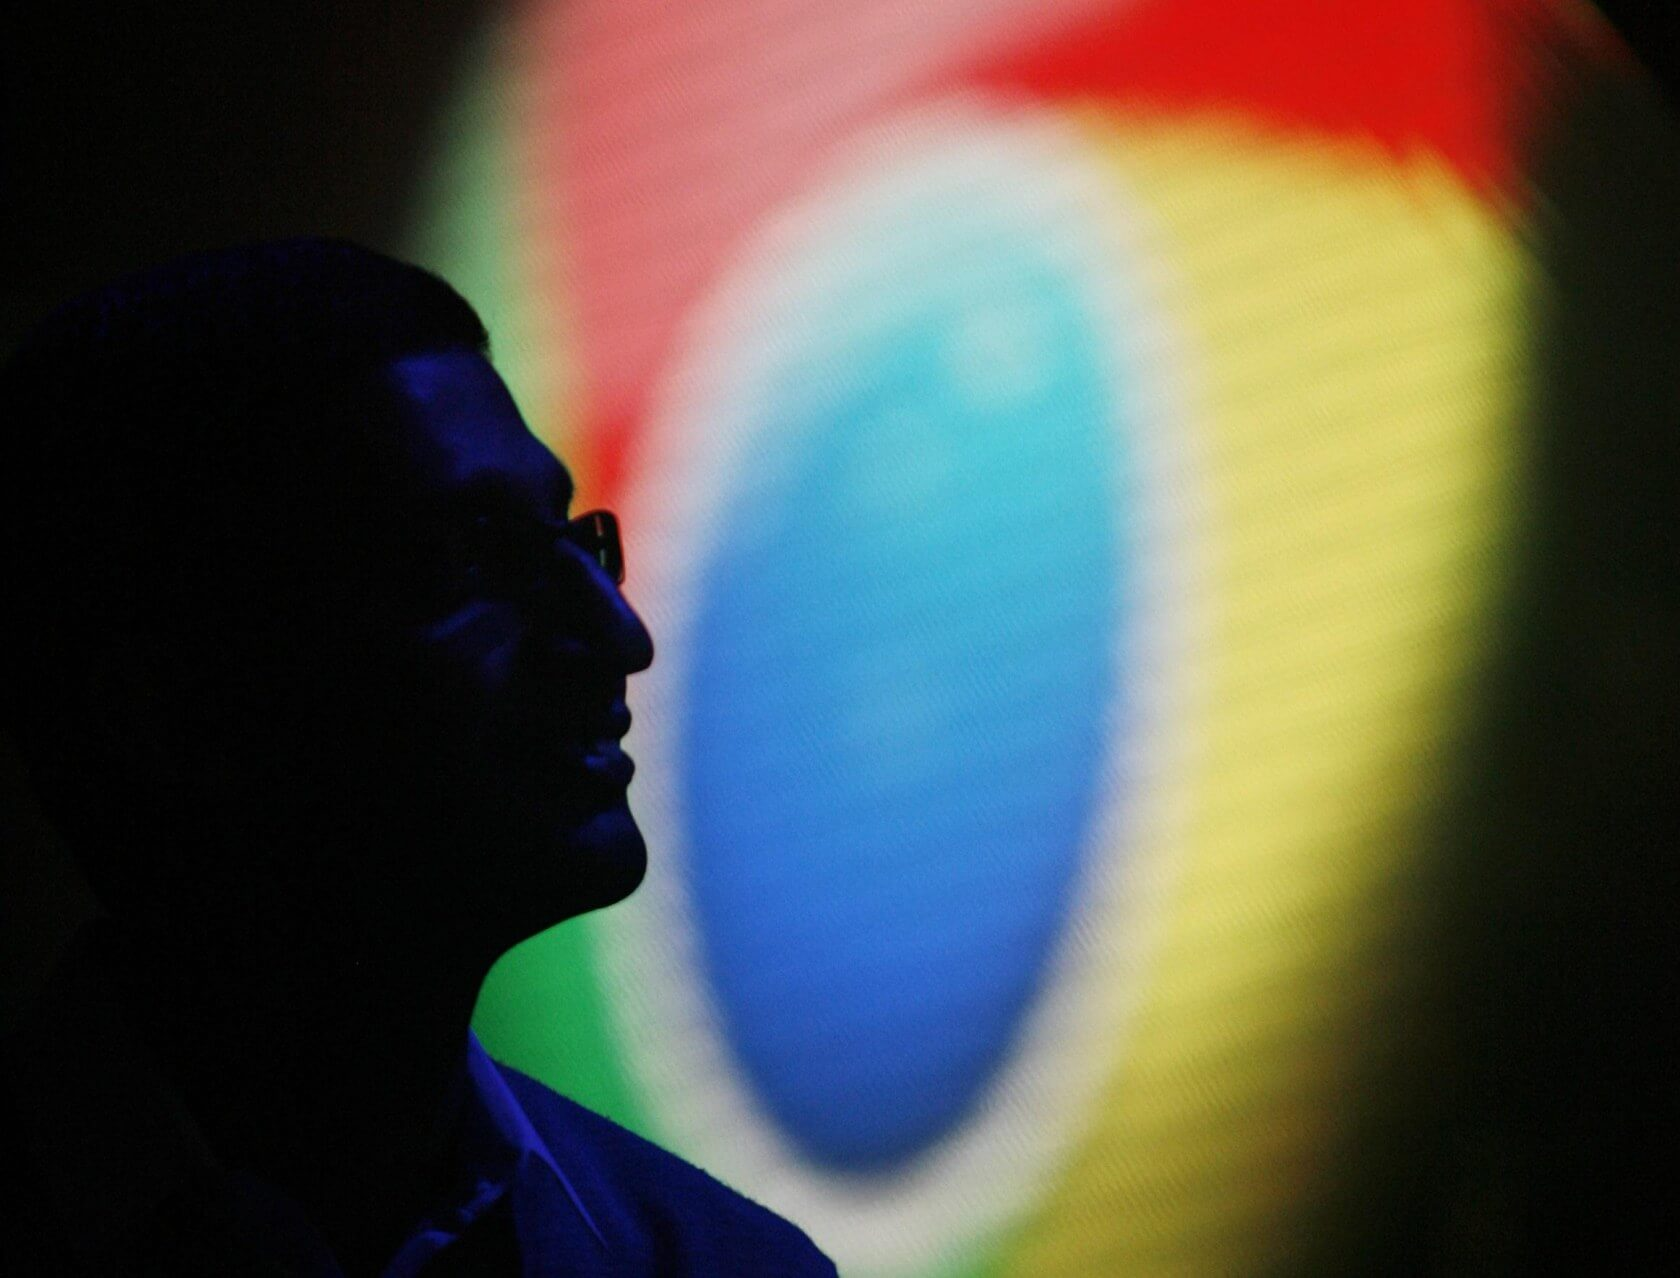 Study shows Google's tracking practices go way beyond Location History